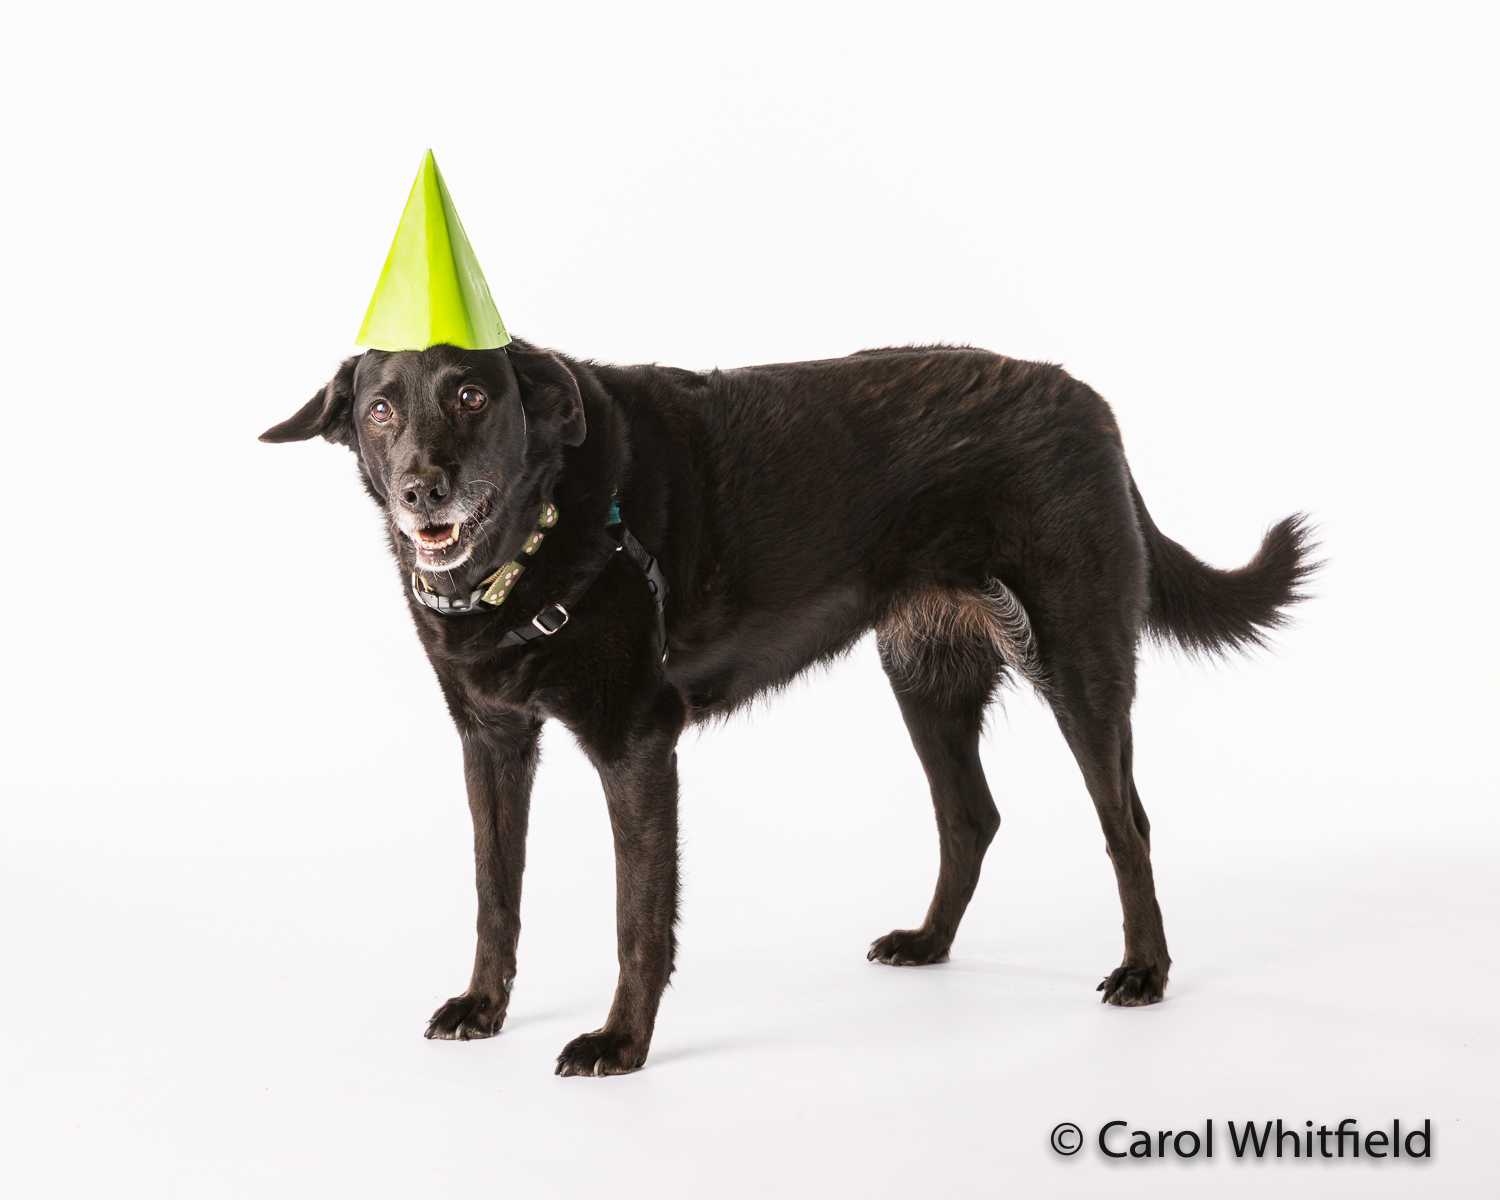 """Who says you can't teach old dogs new tricks??  This 13 year old beauty really doesn't like wearing """"clothes"""" but her mom taught her to HAPPILY wear a party hat!"""